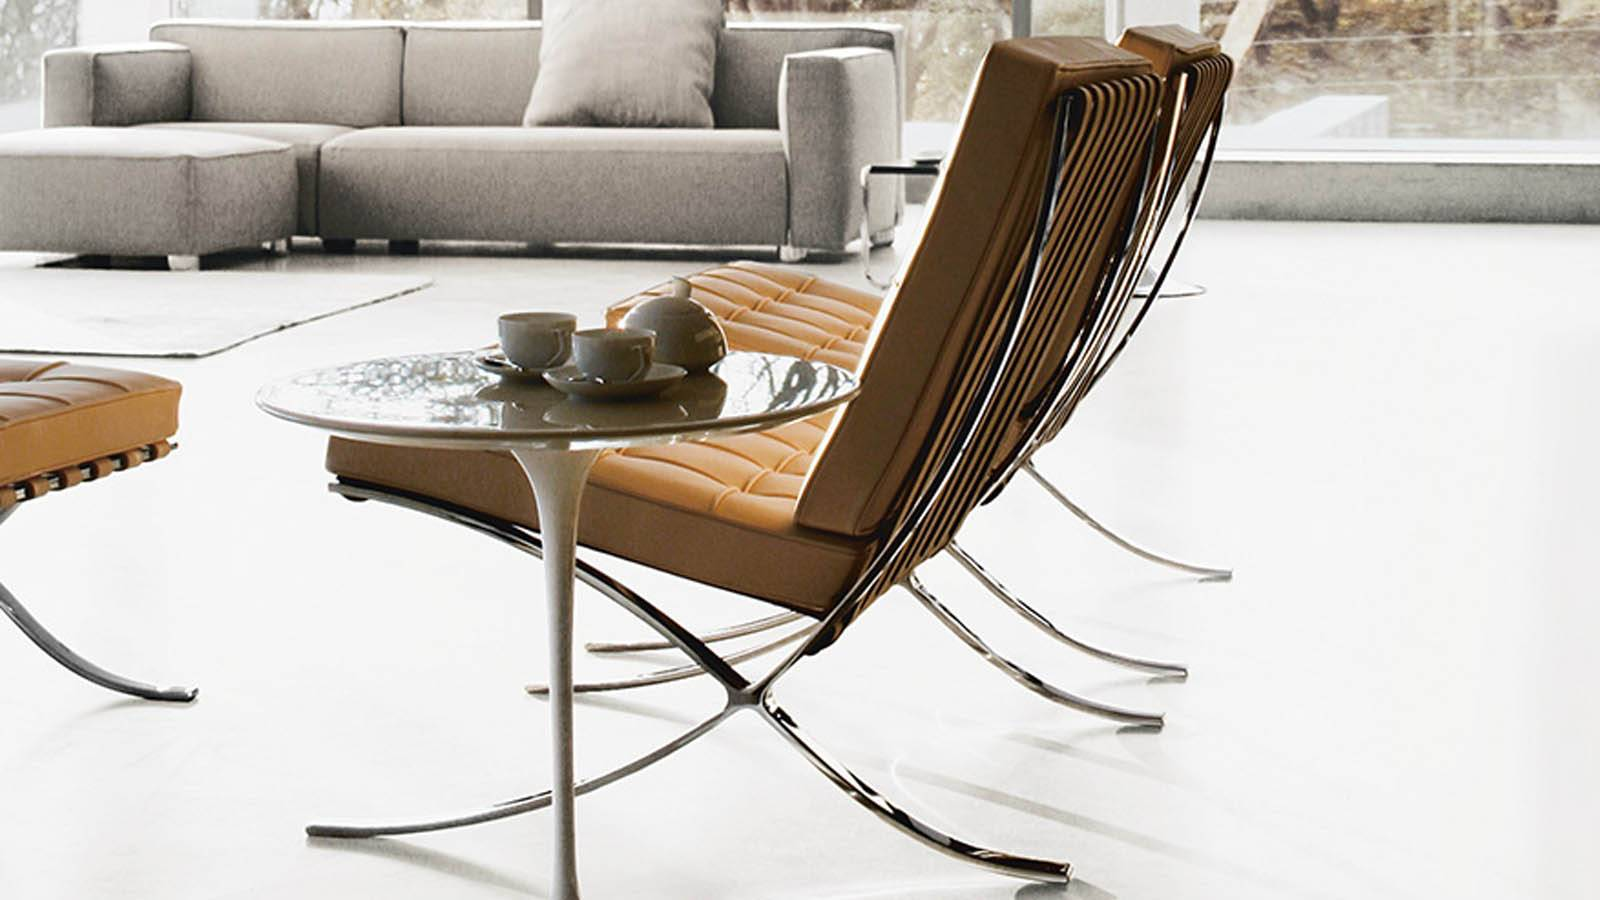 The barcelona chair by mies van der rohe sag80 - Mies van der rohe muebles ...